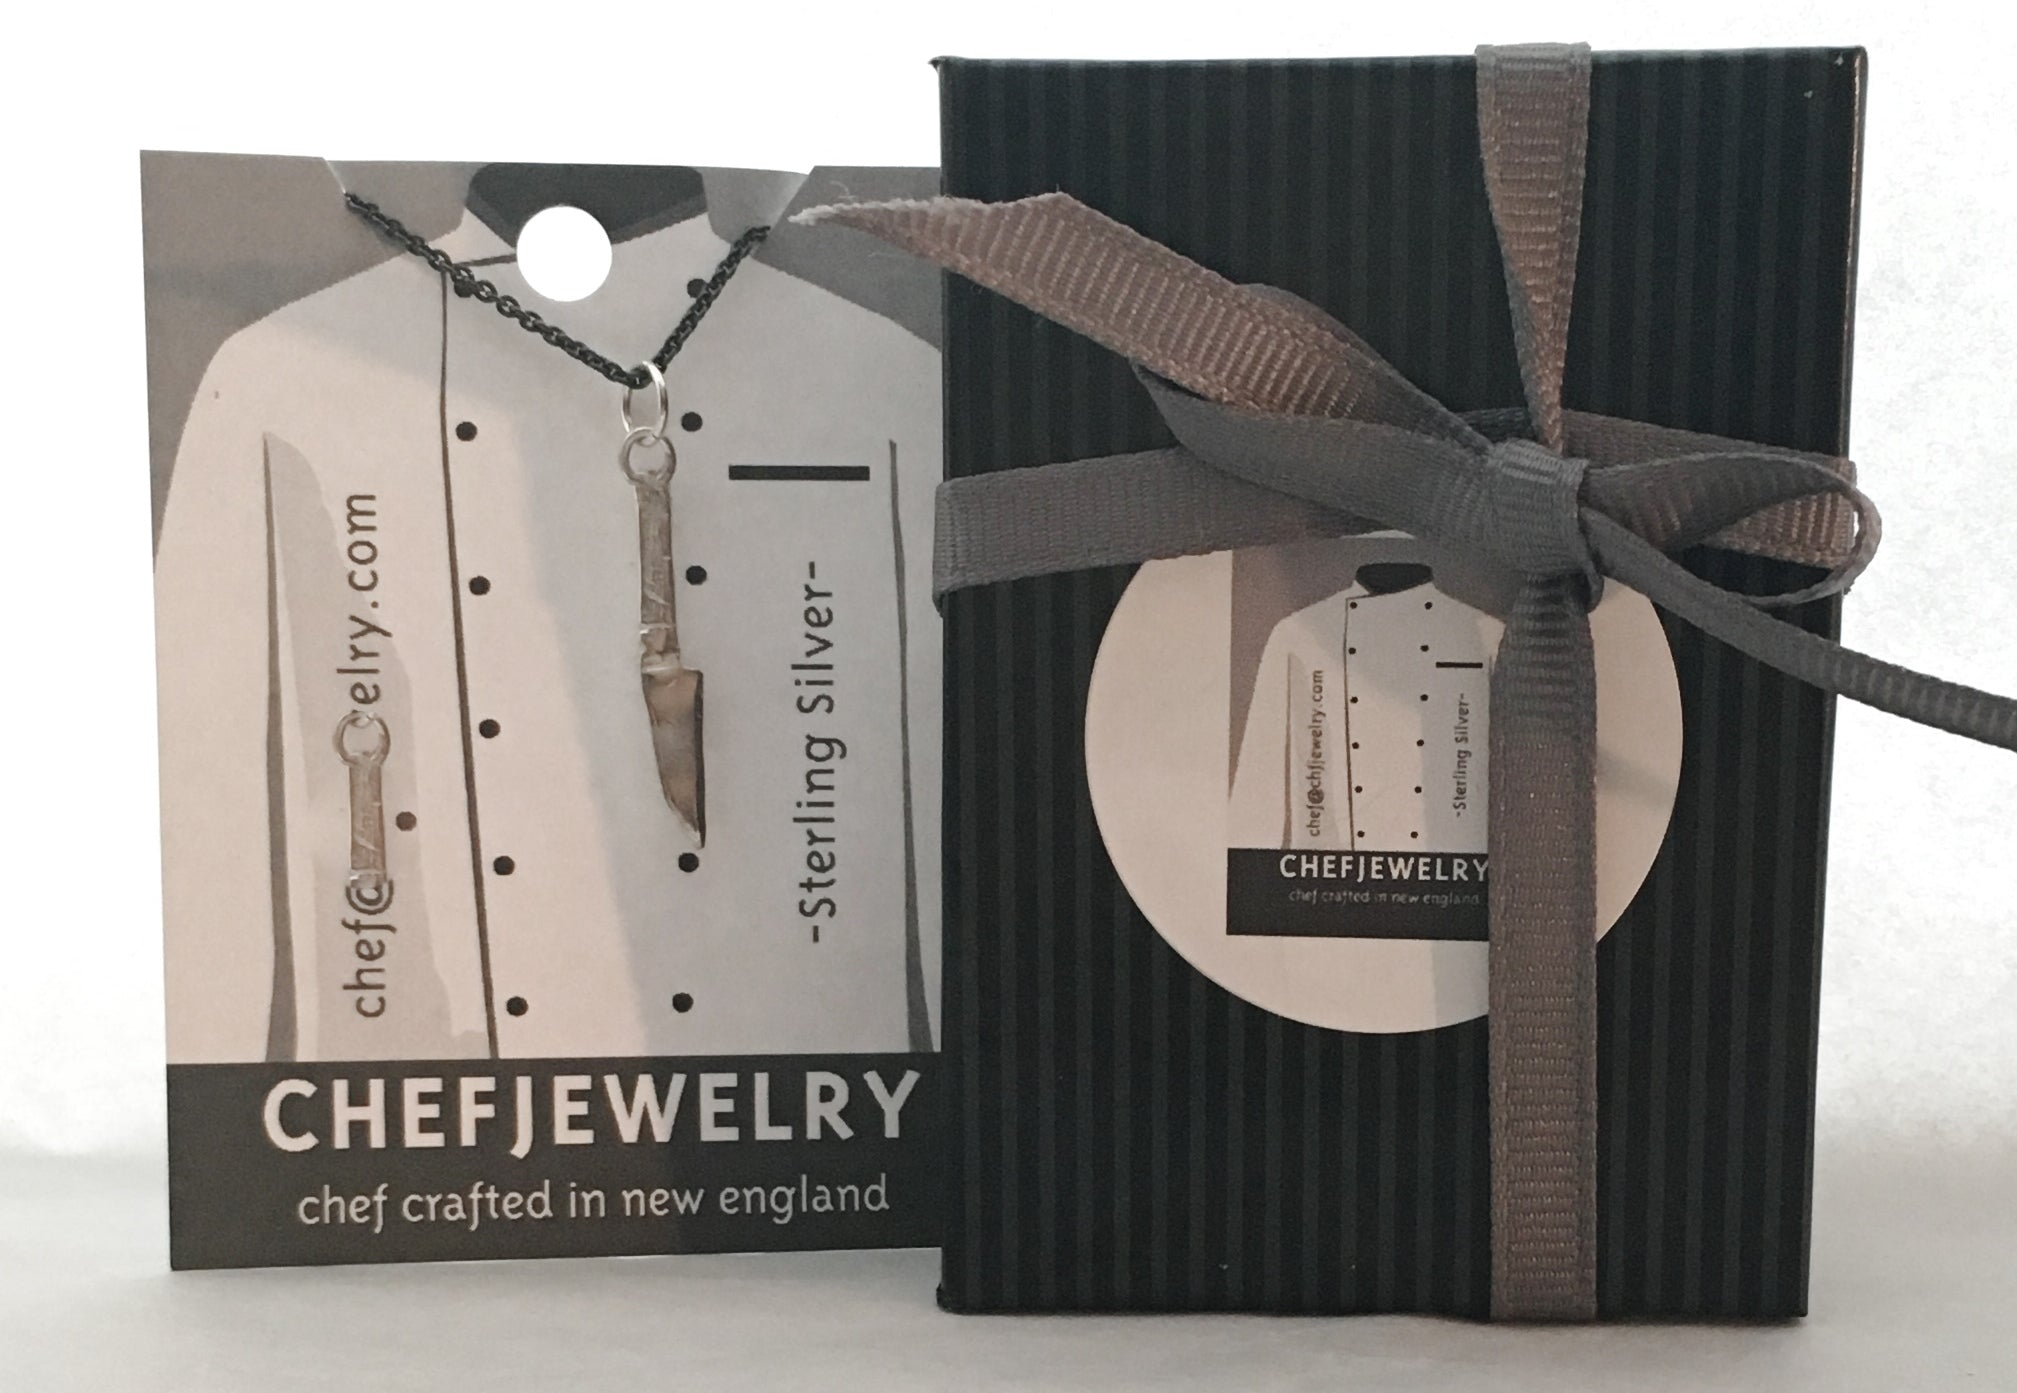 your chefjewelry cufflinks will arrive with custom chefjewelry packaging